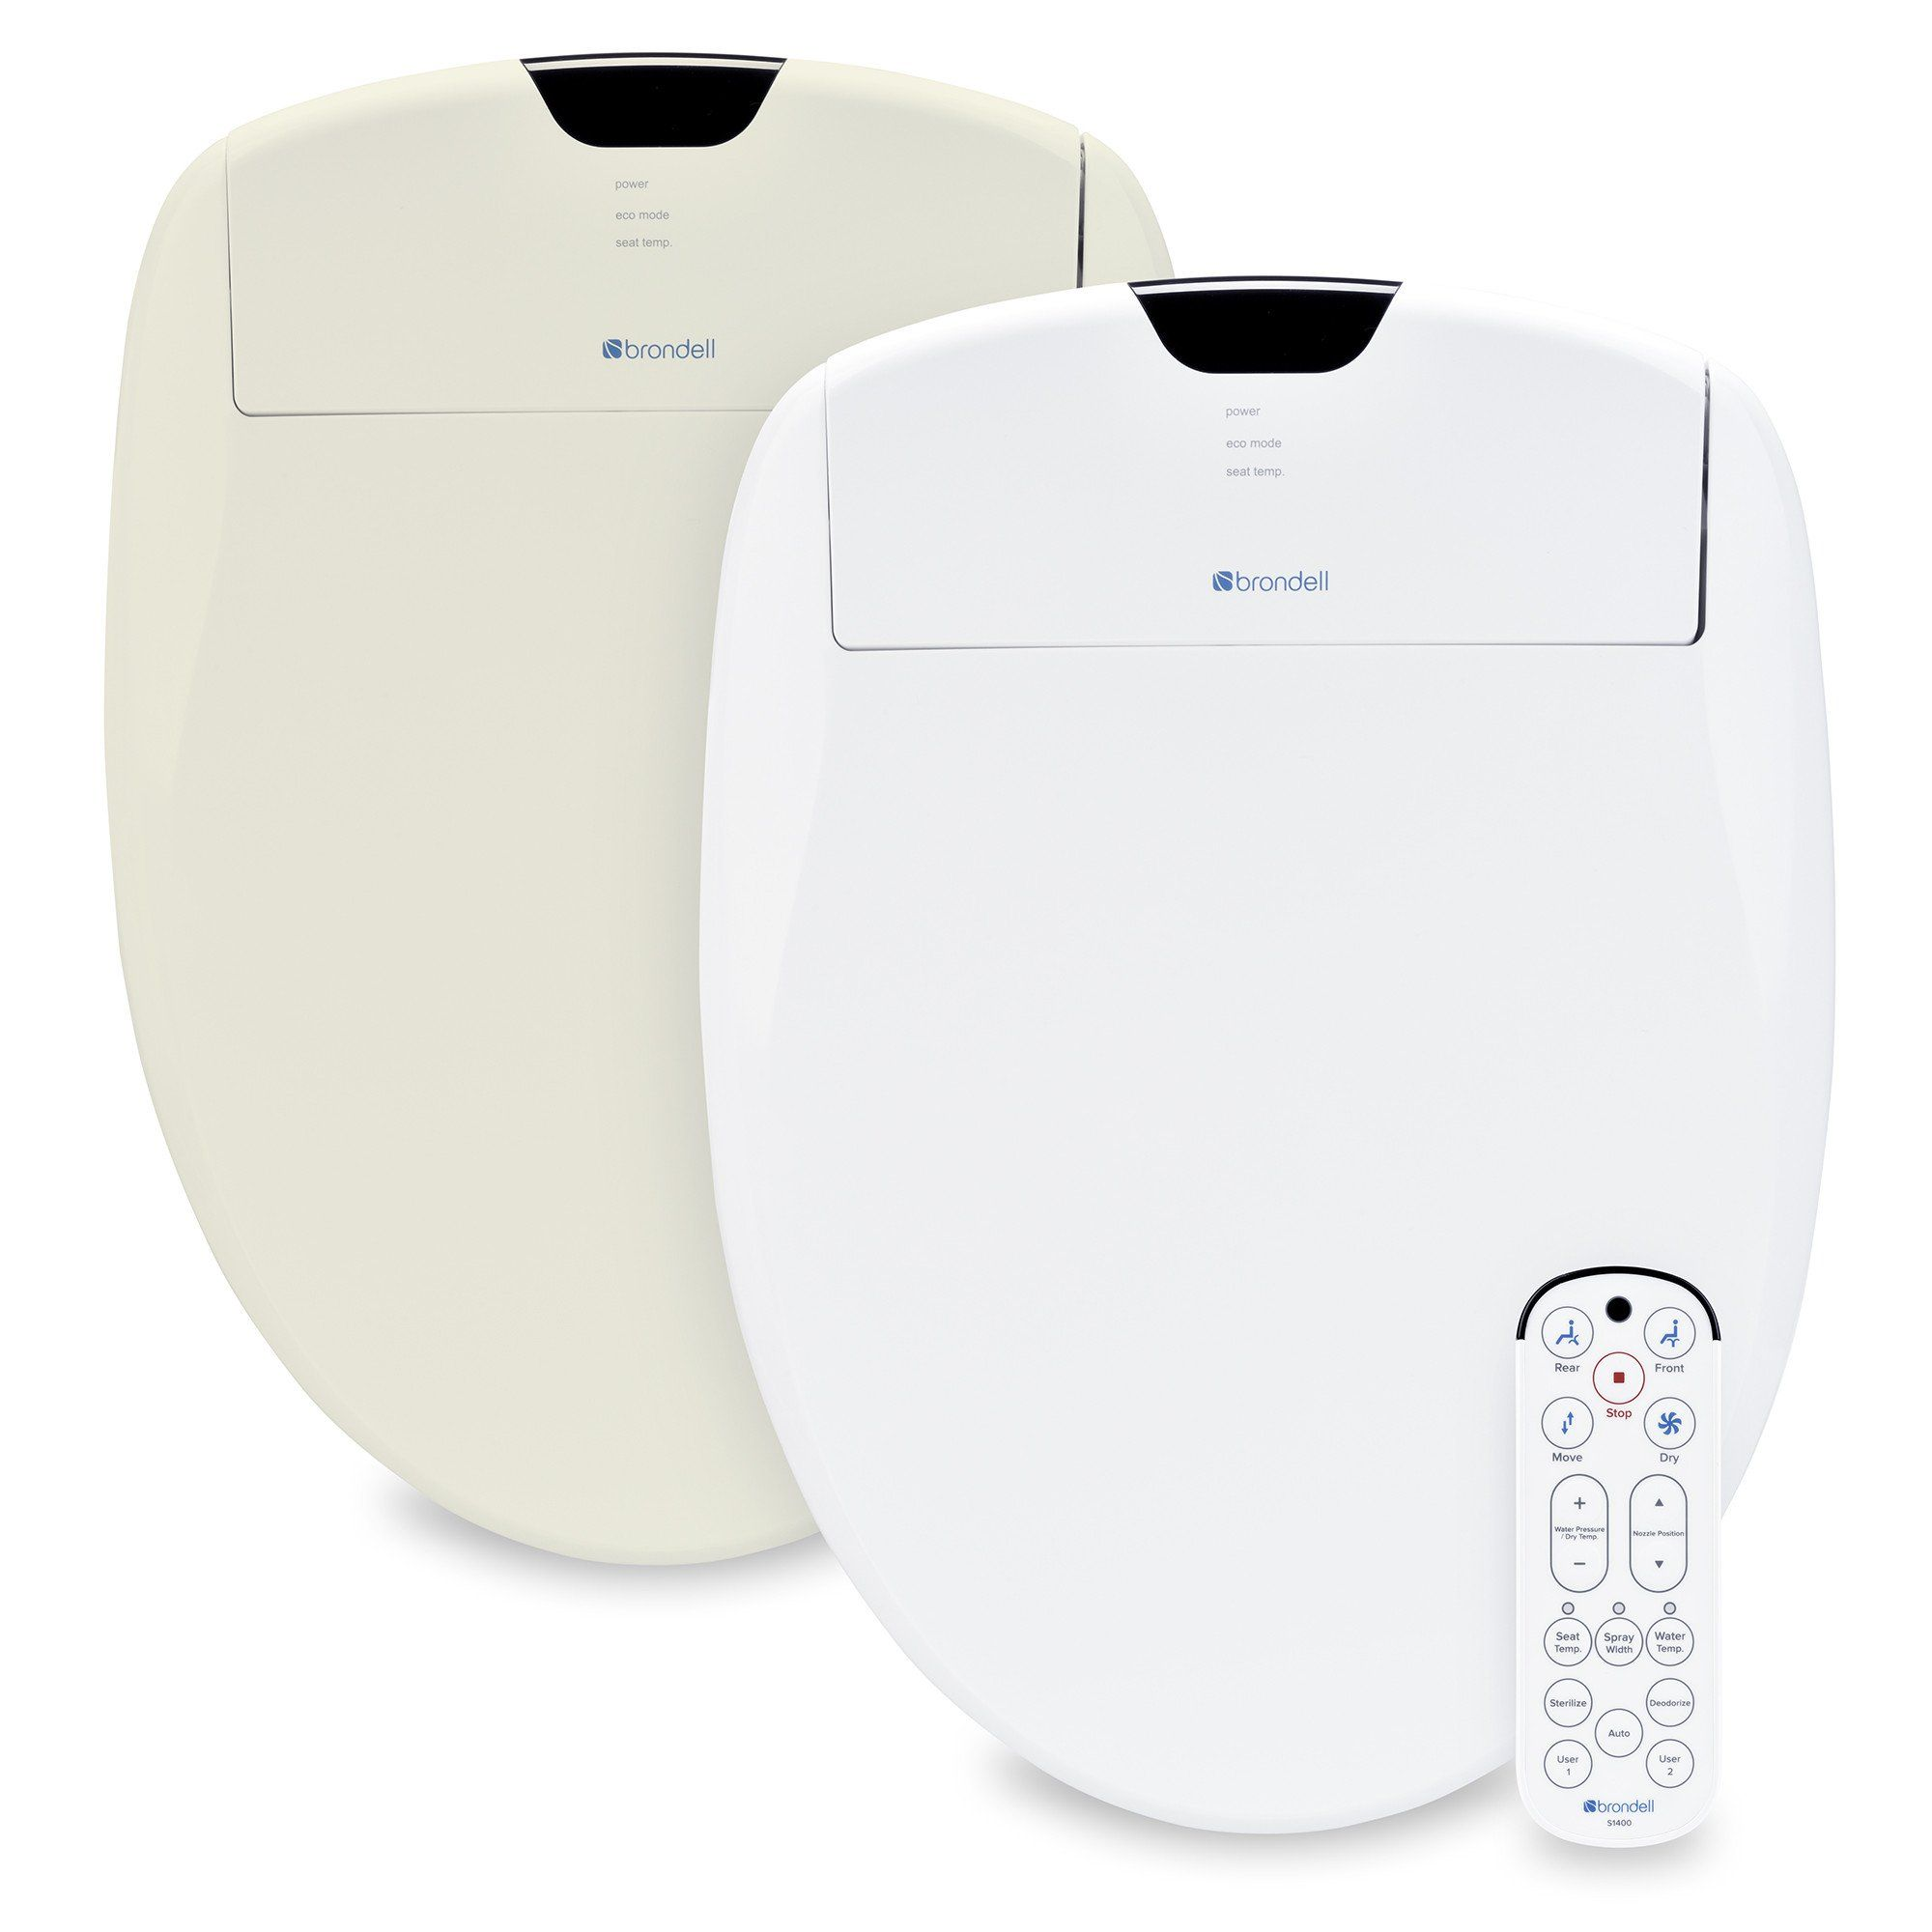 Swash 1400 Luxury Bidet Seat in 2020 Bidet, Bidet toilet